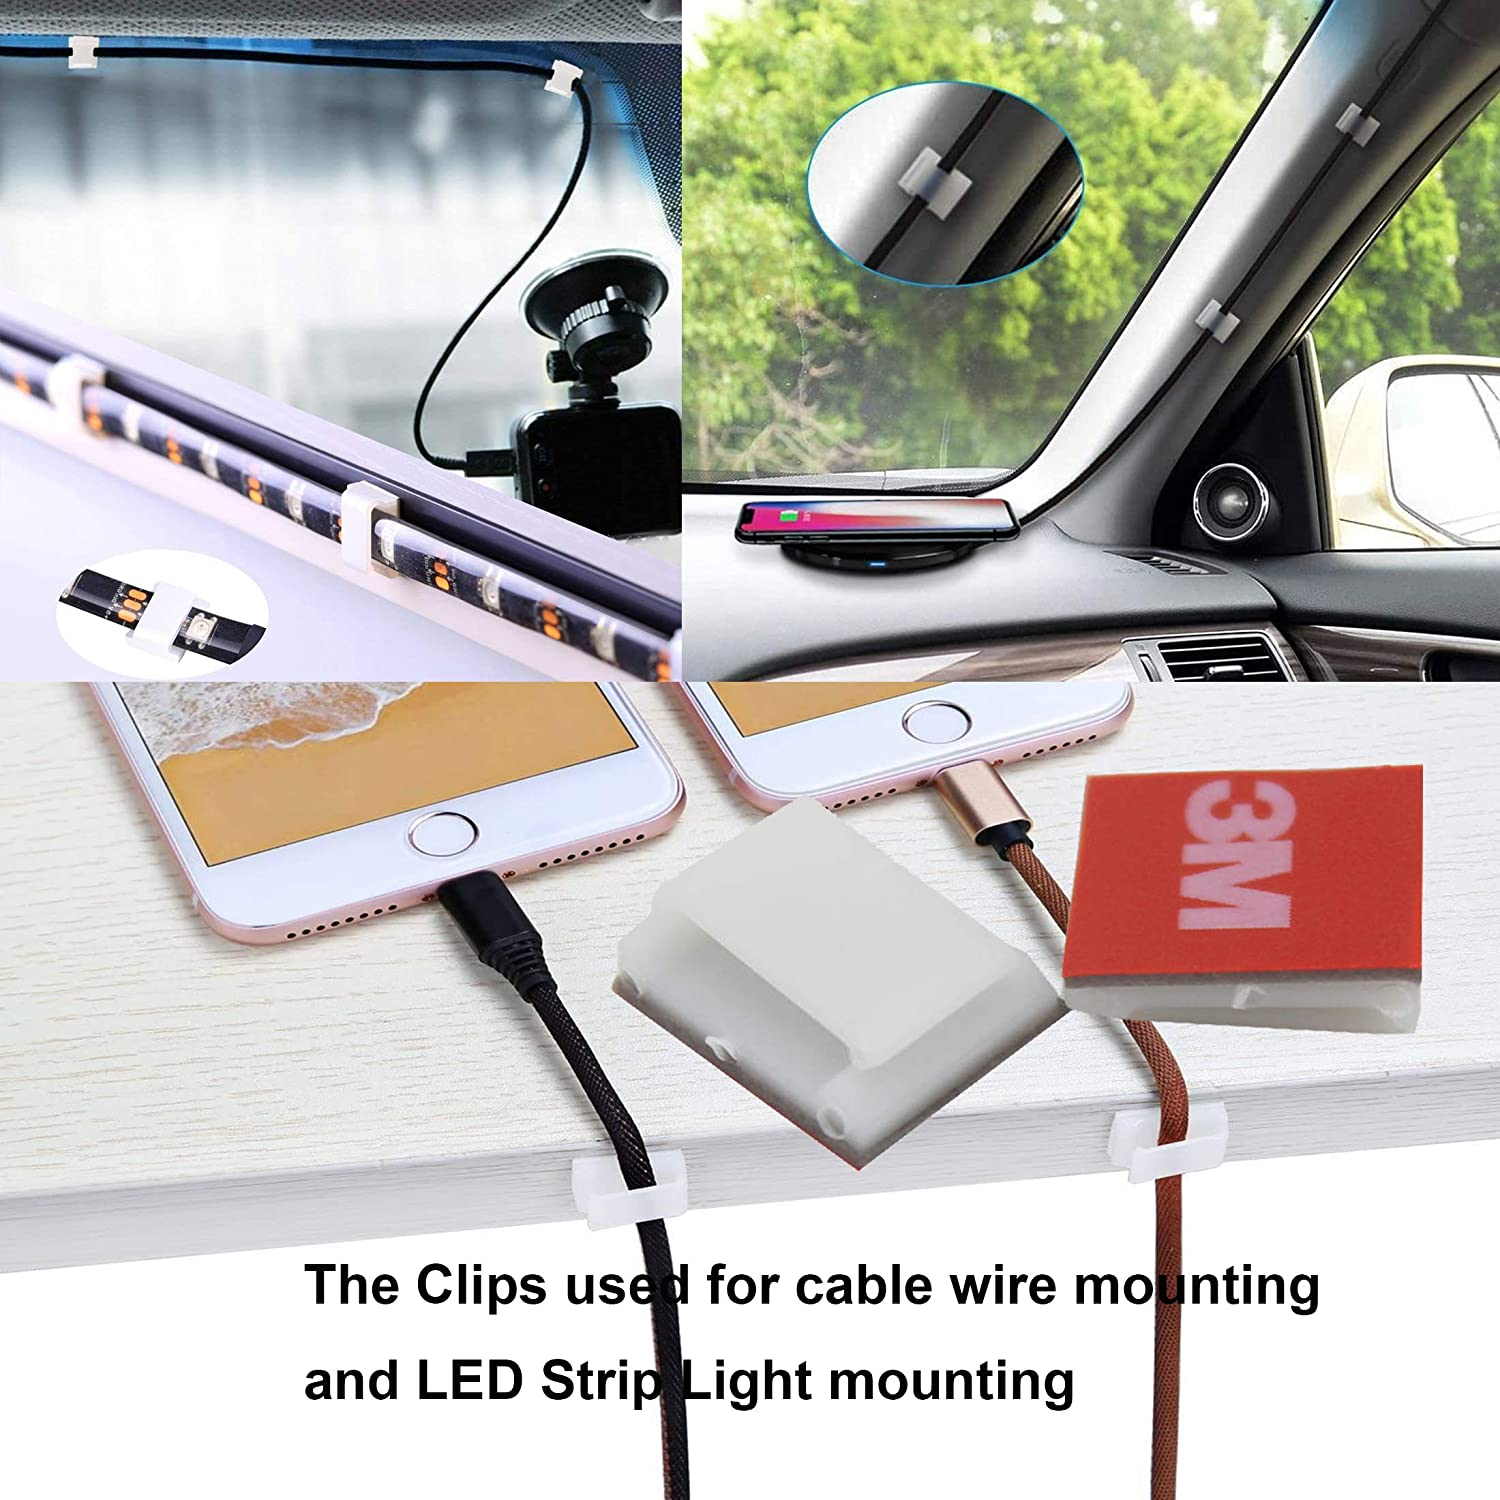 Clear Strip Light Mounting Clips Self-Adhesive Strip Light Brackets Hooks,Fixing Clamps LED Strip Light 8mm,10mm,12mm.72 Pack Strip Light Brackets Holder,USB Cable Wires Organizer.